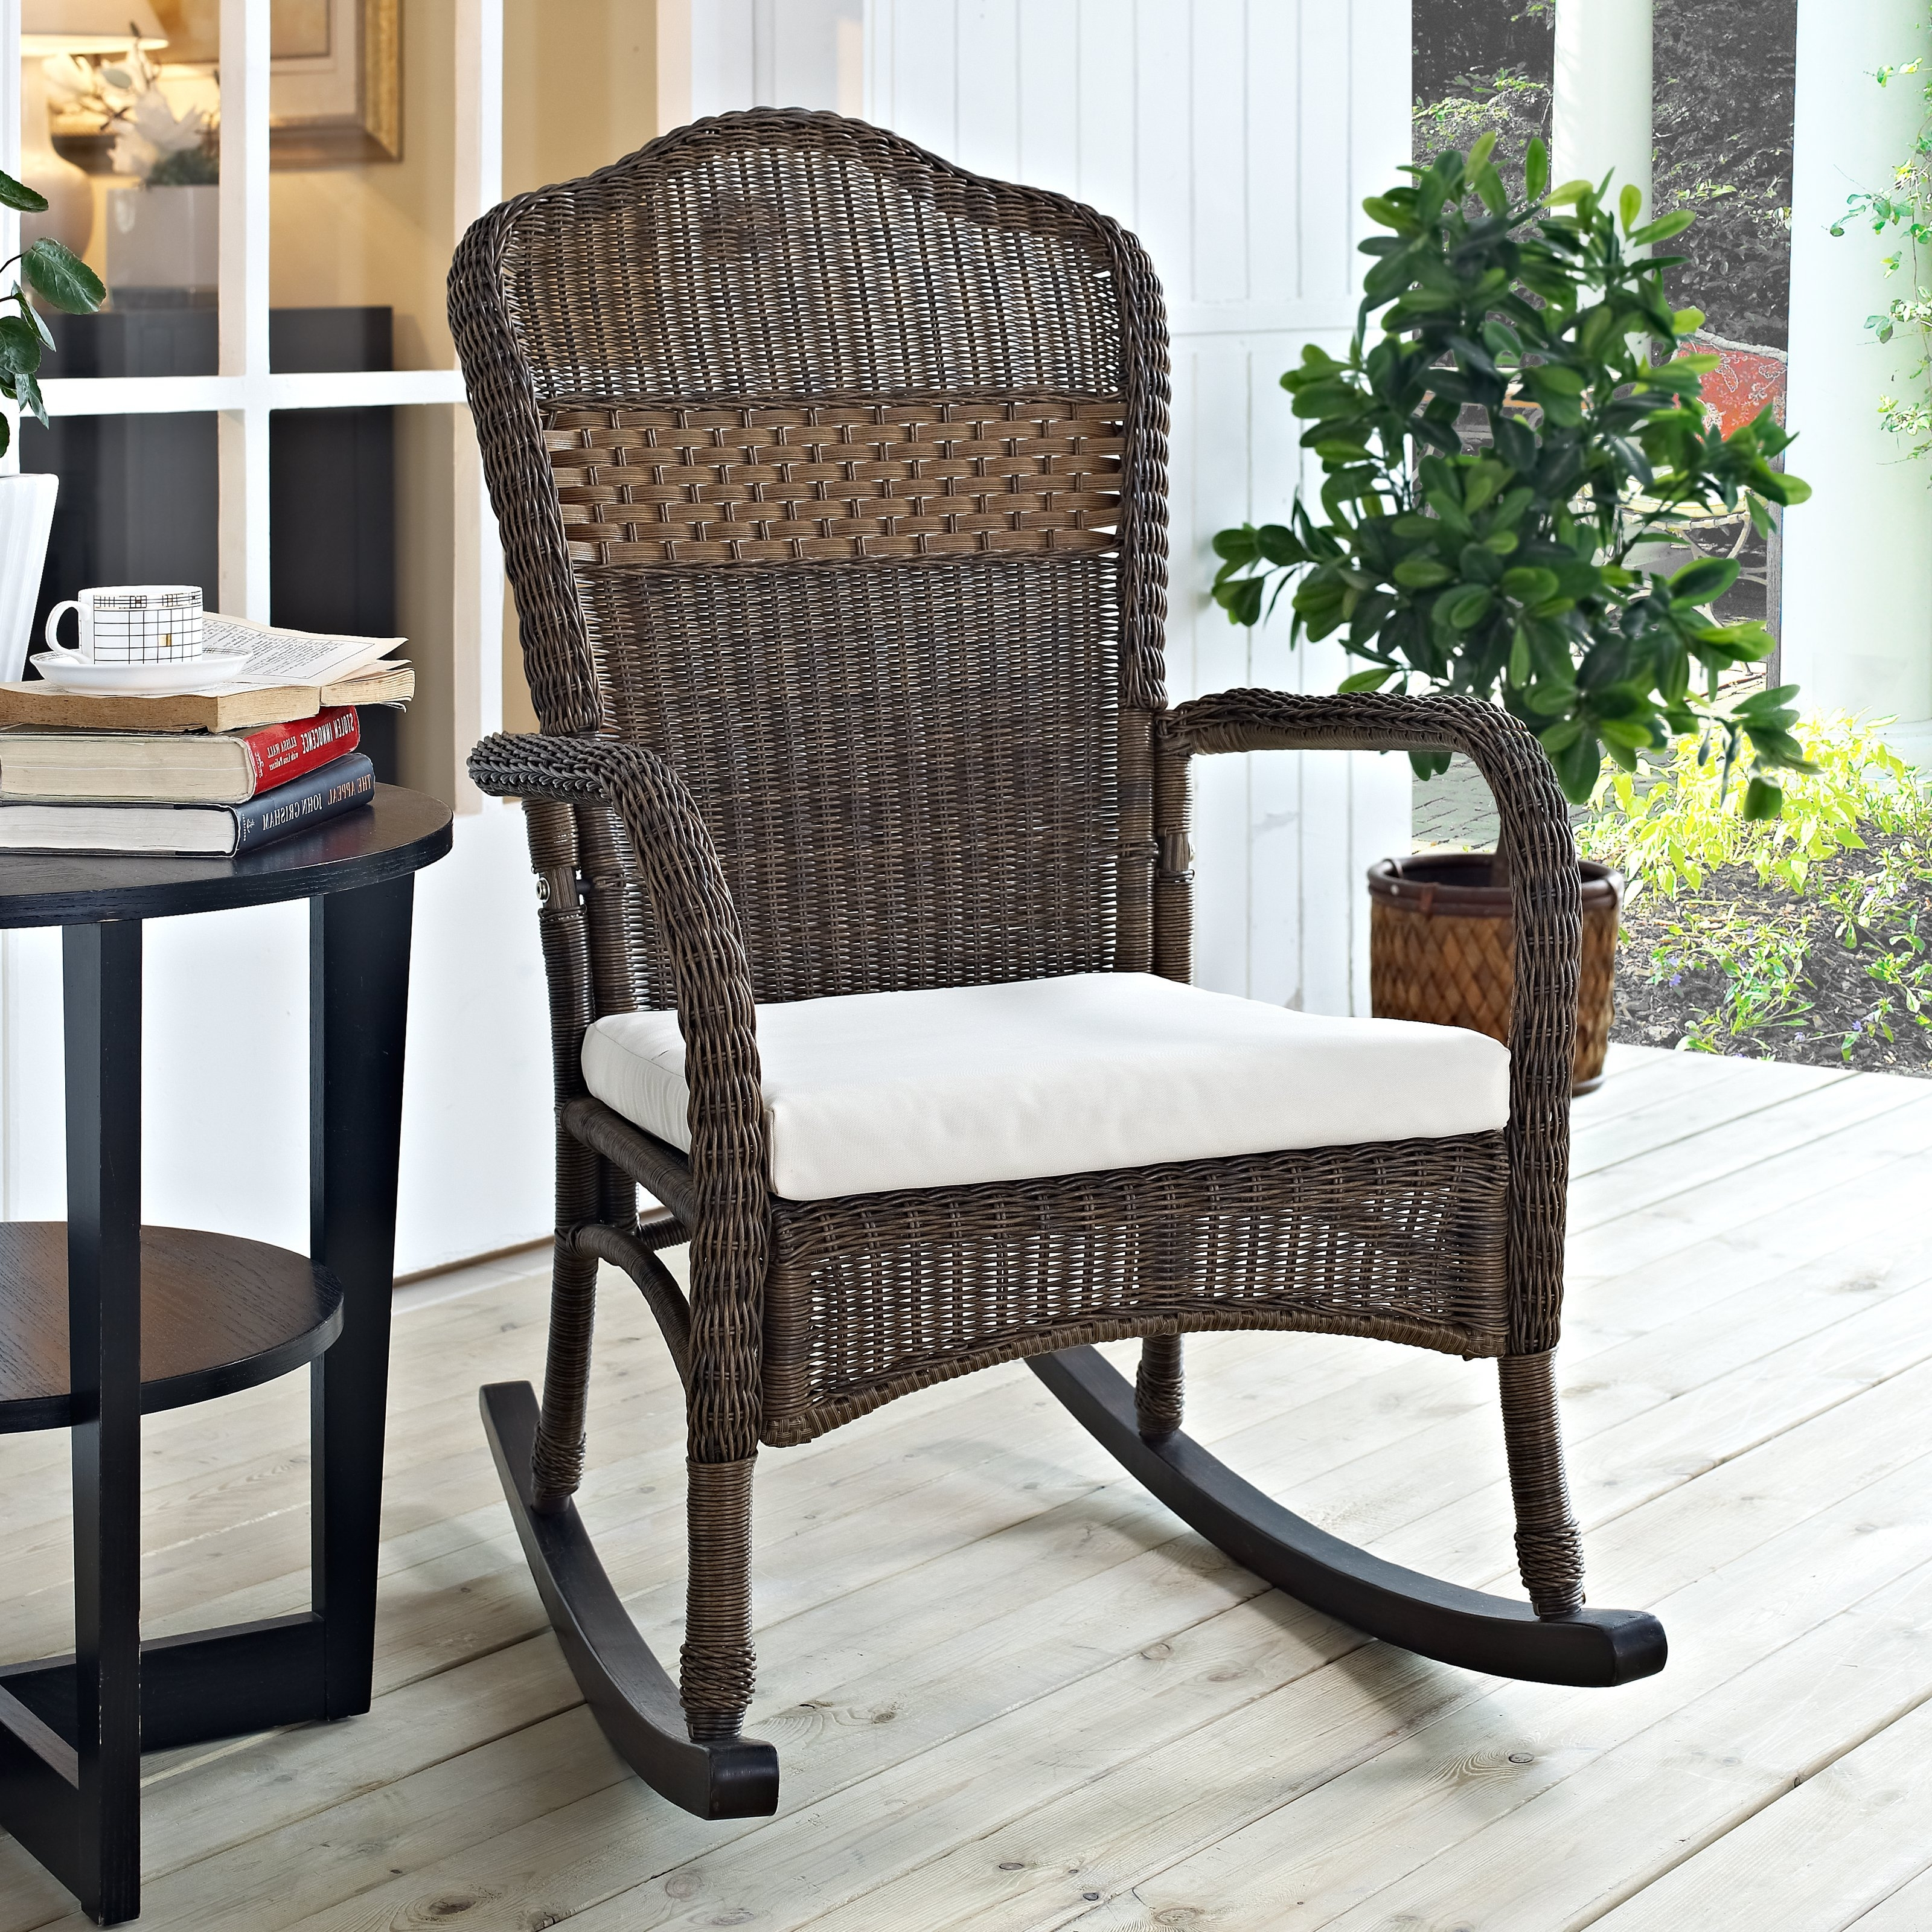 White Resin Patio Rocking Chairs Intended For Best And Newest 55 White Wicker Rocking Chair, 3 Pc Outdoor Patio Coastal White (View 11 of 15)